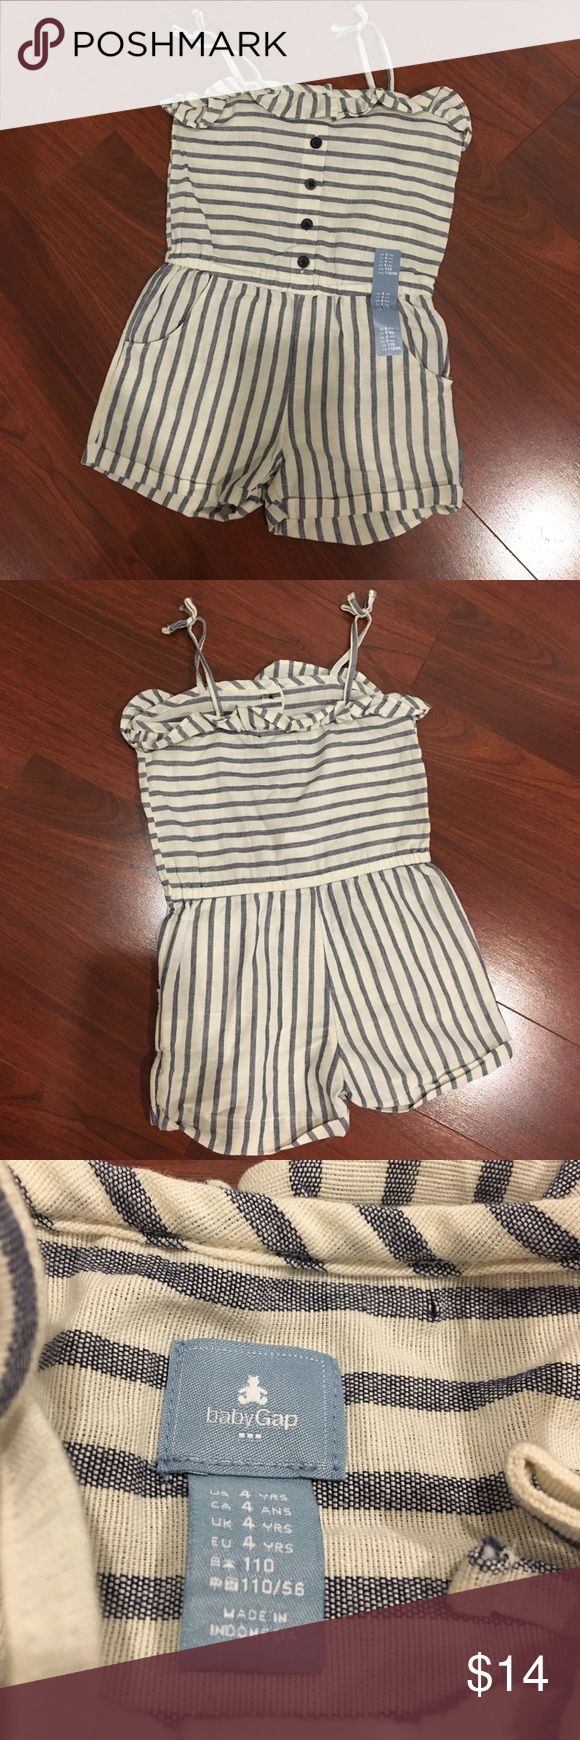 GAP Girls Striped Romper GAP Denim and cream striped romper. Girls size 4 years. Brand new with tags. Cute straps for shoulders tie with bows at the top. If only I had a daughter who would fit into this! lol Extremely CUTE outfit!! GAP One Pieces